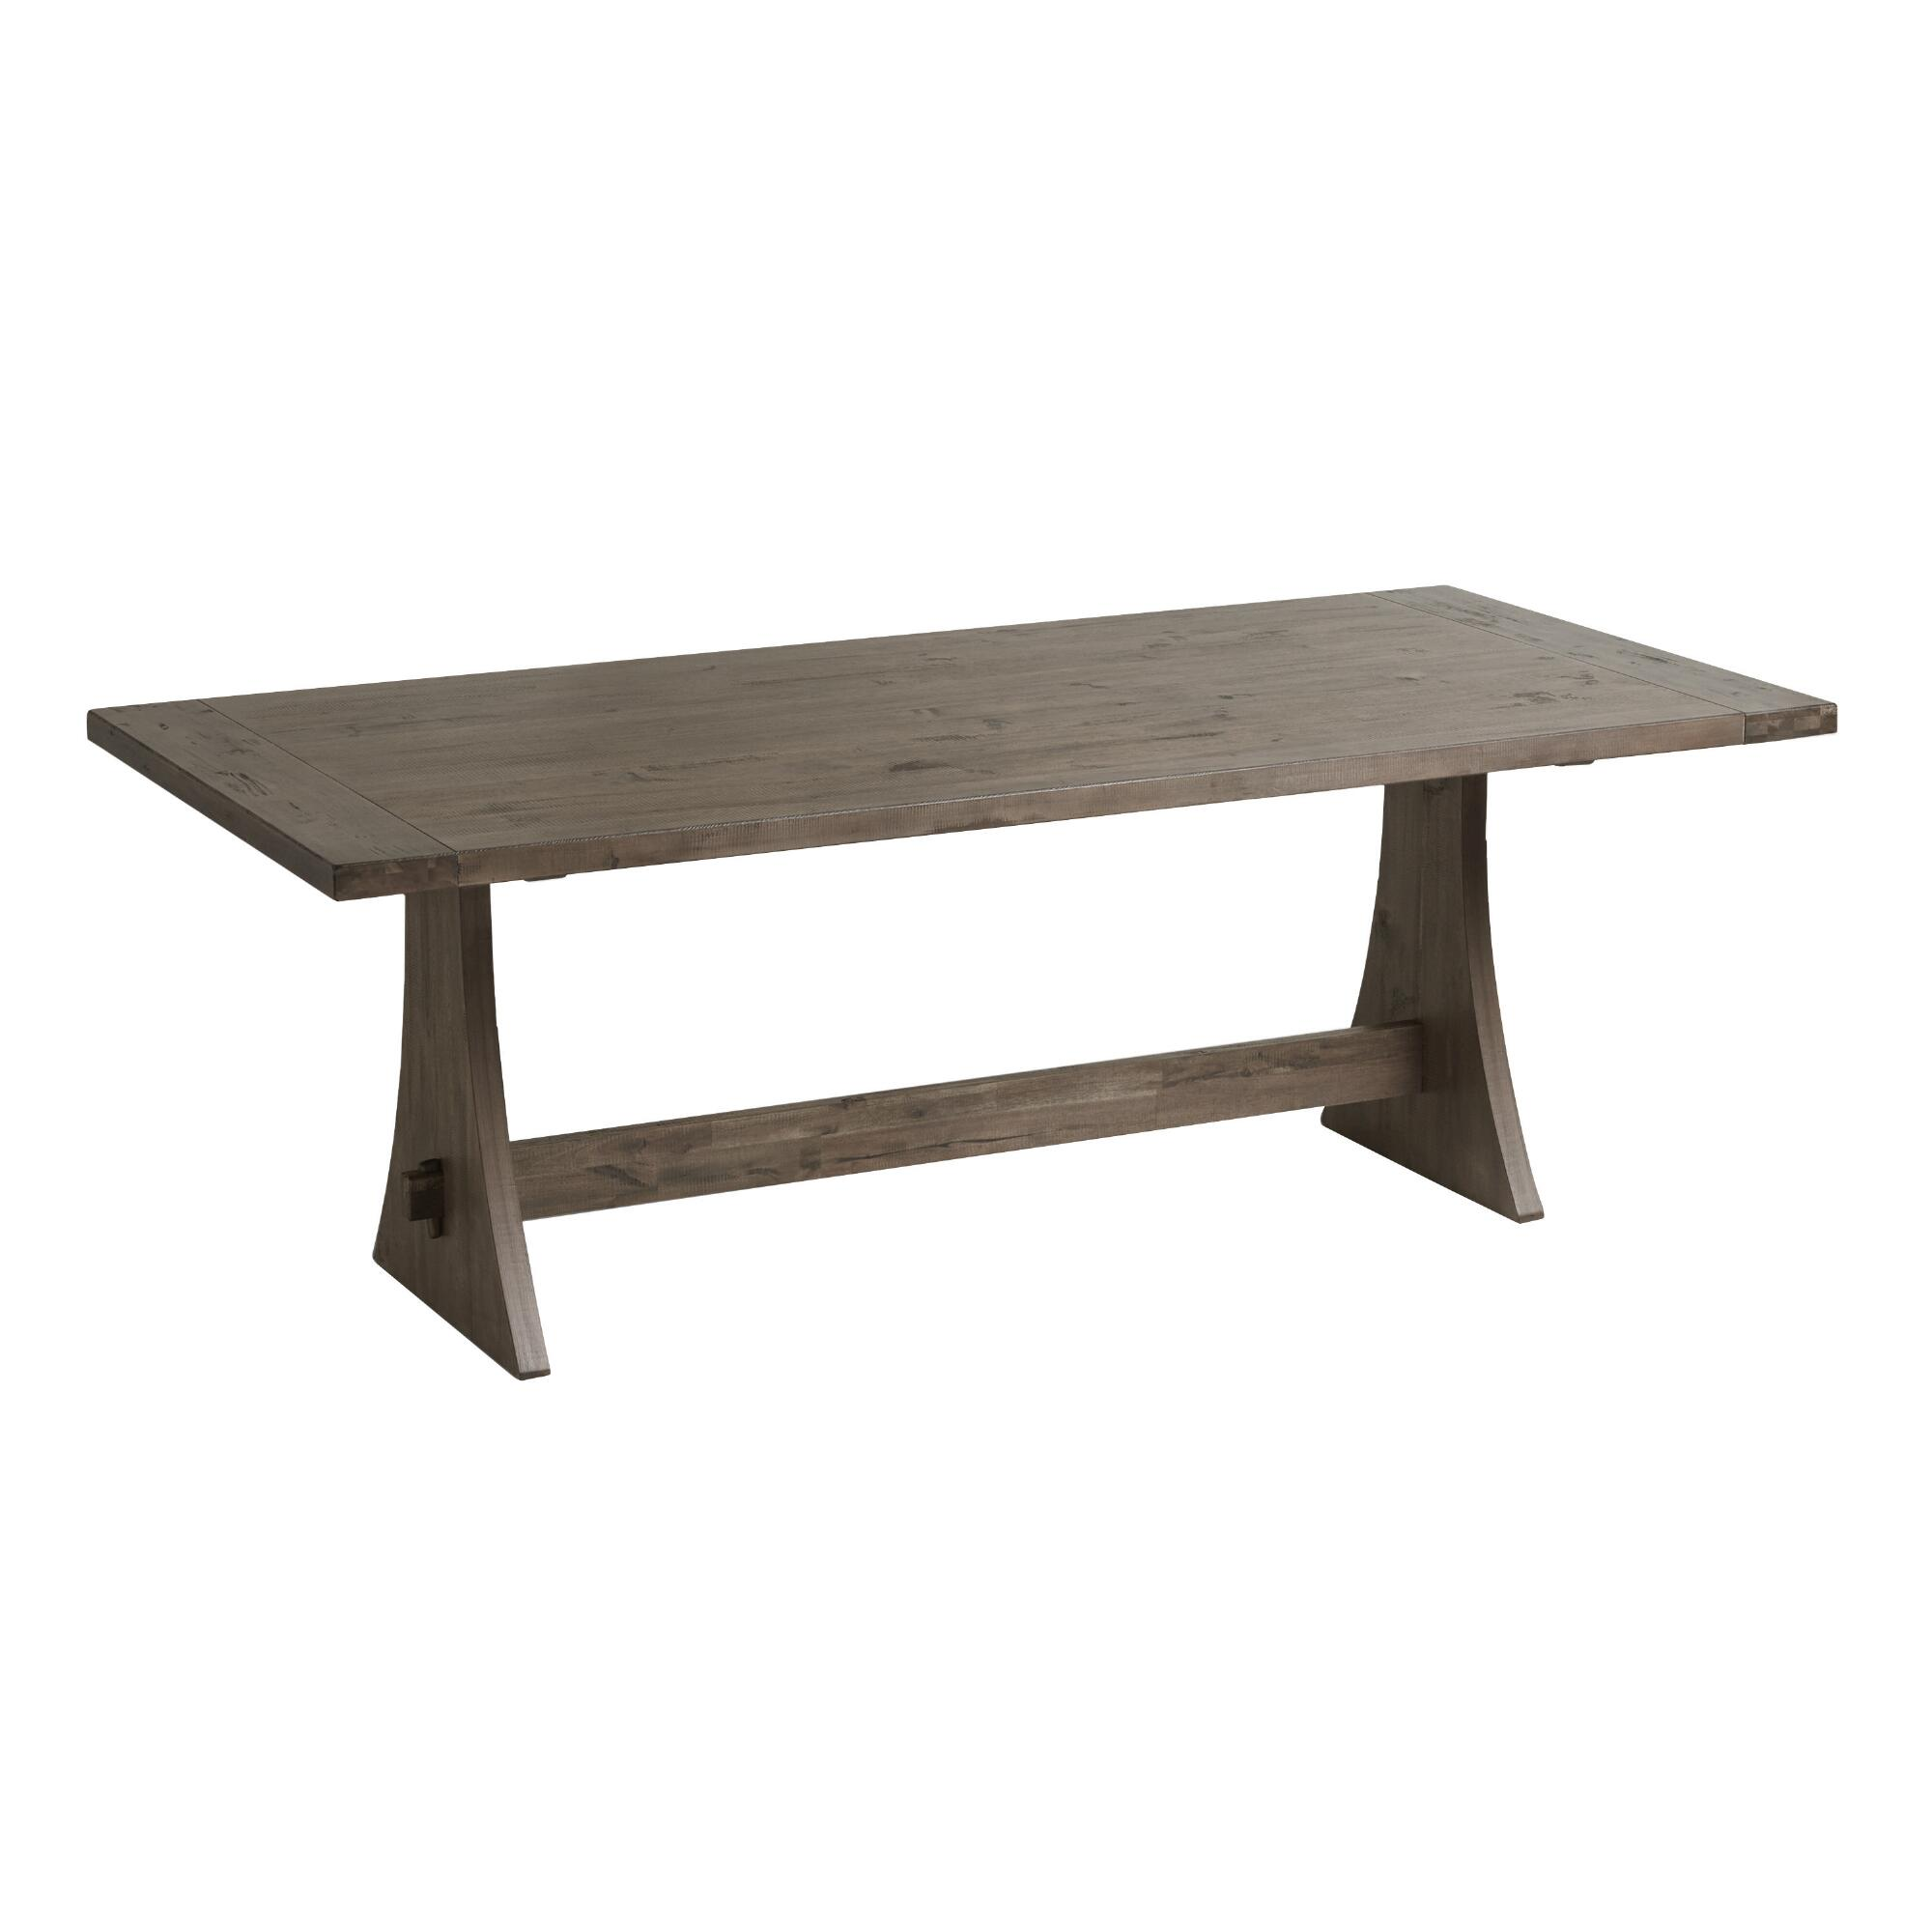 Rustic wood brinley fixed dining table world market Rustic wood dining table